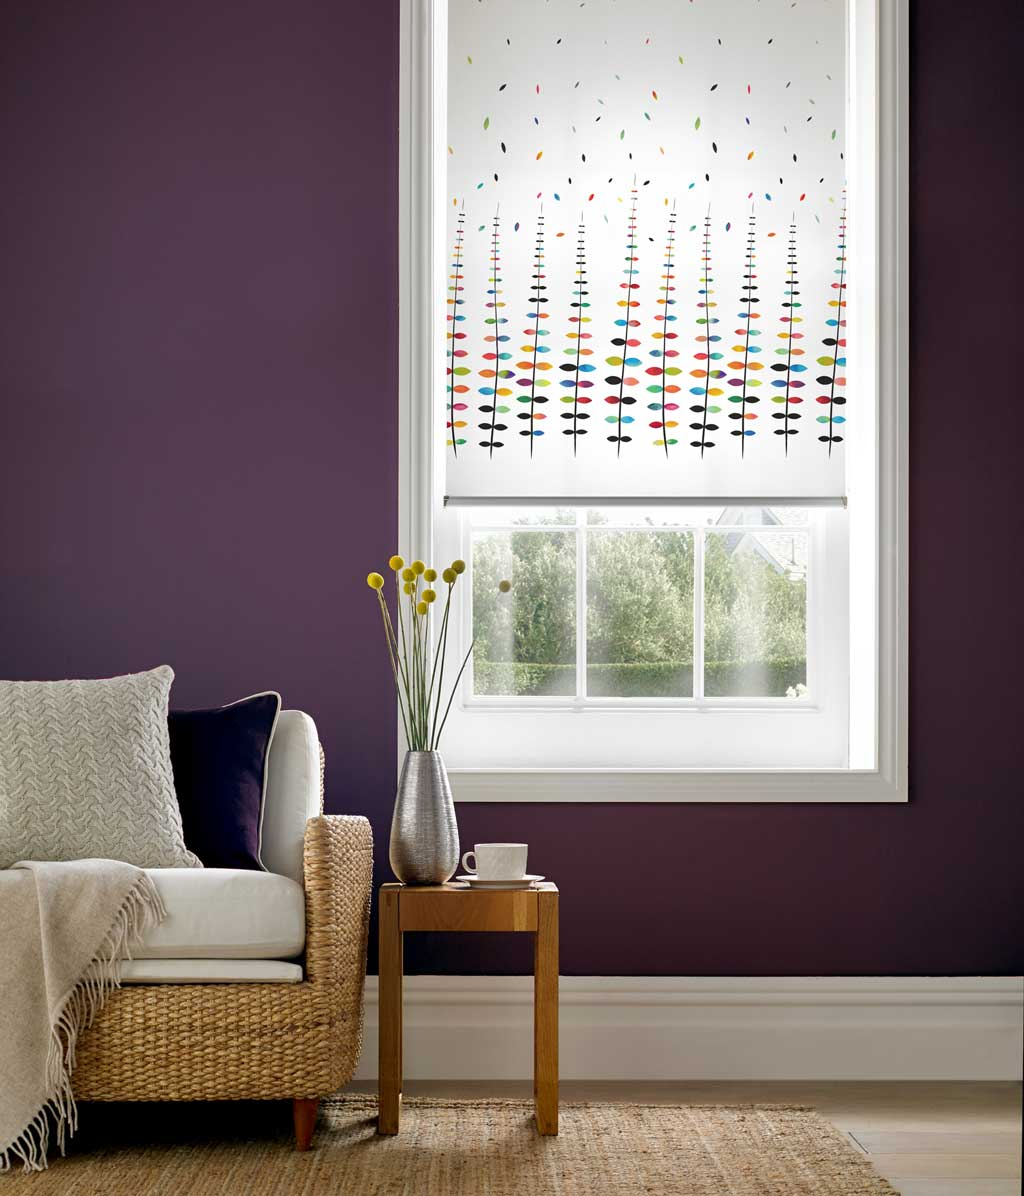 bespoke roller blinds uk